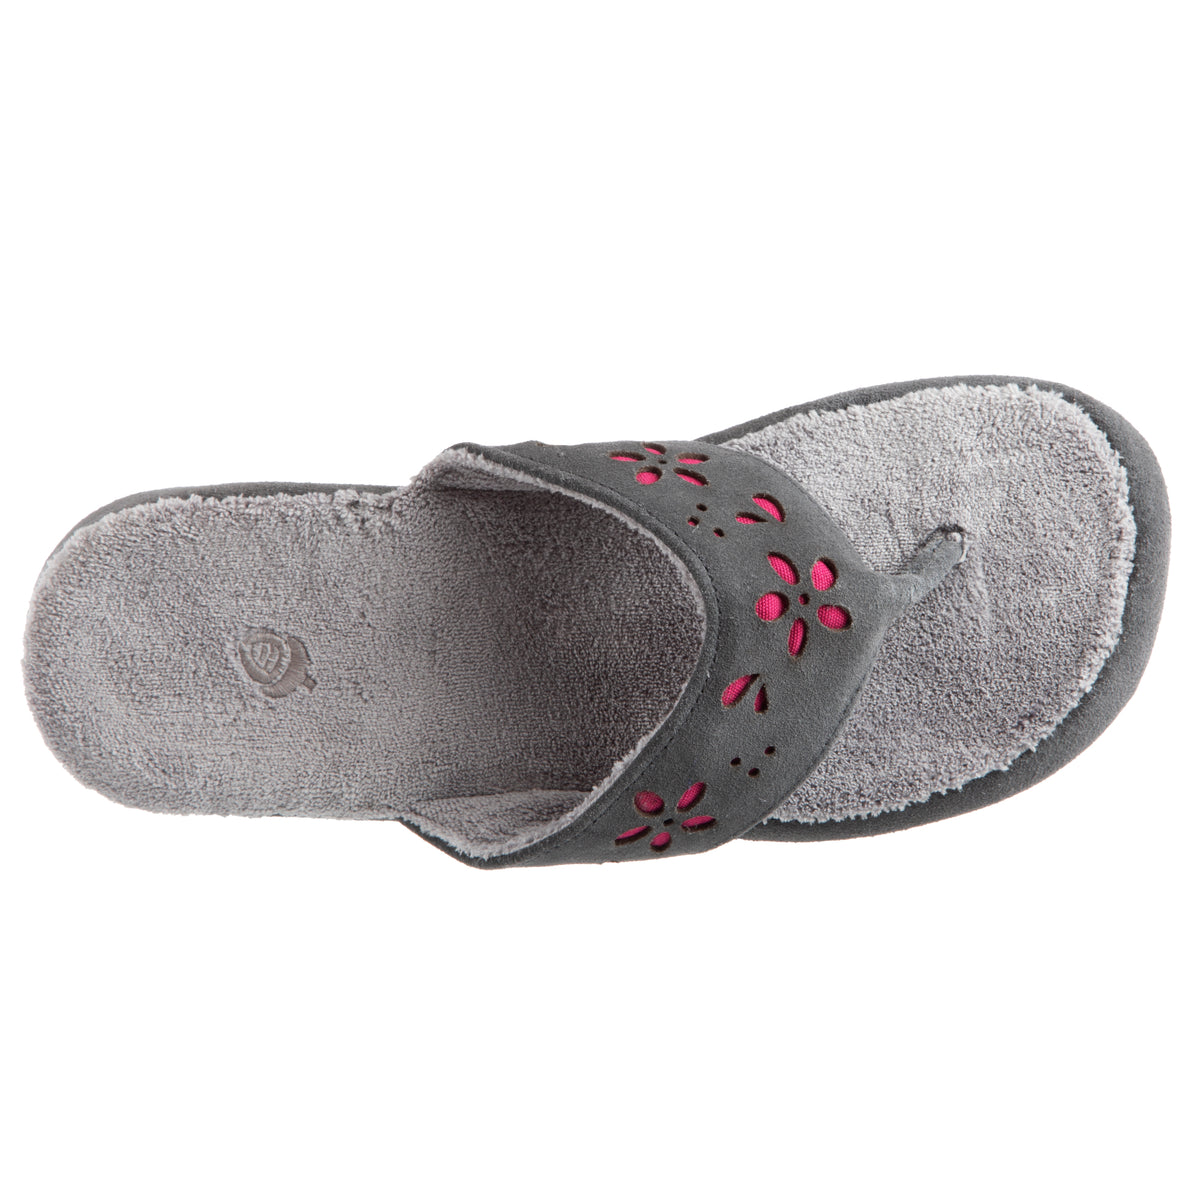 Acorn Women's Flora Suede Spa Thong Grey Top Down View